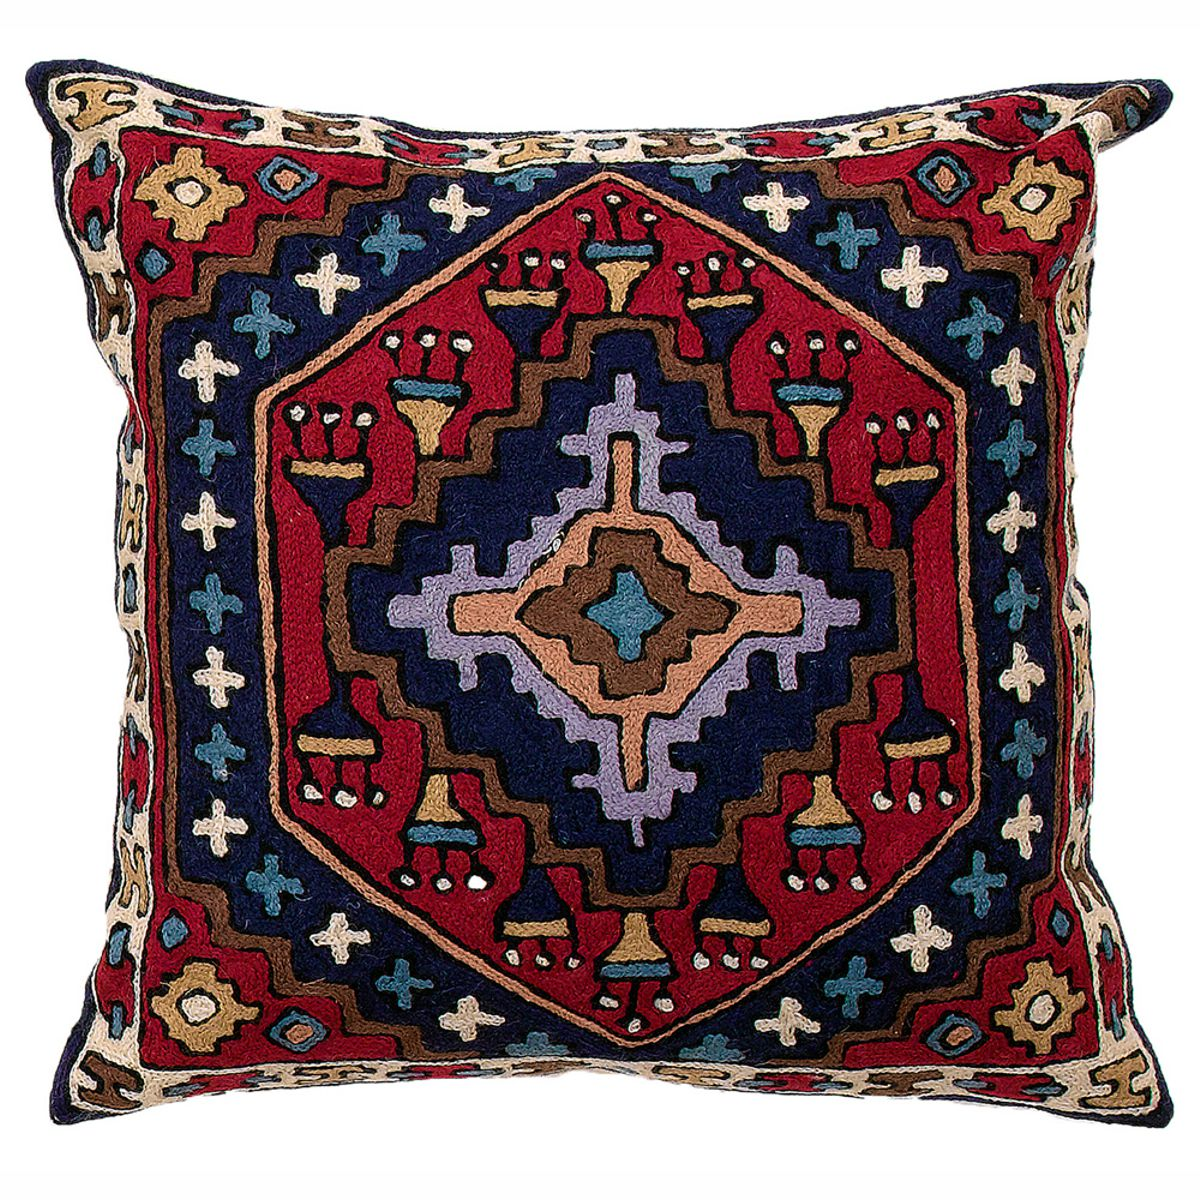 "Zaida Kilim Cushion 18"" 45cm x 45cm (18 x 18 inches)"